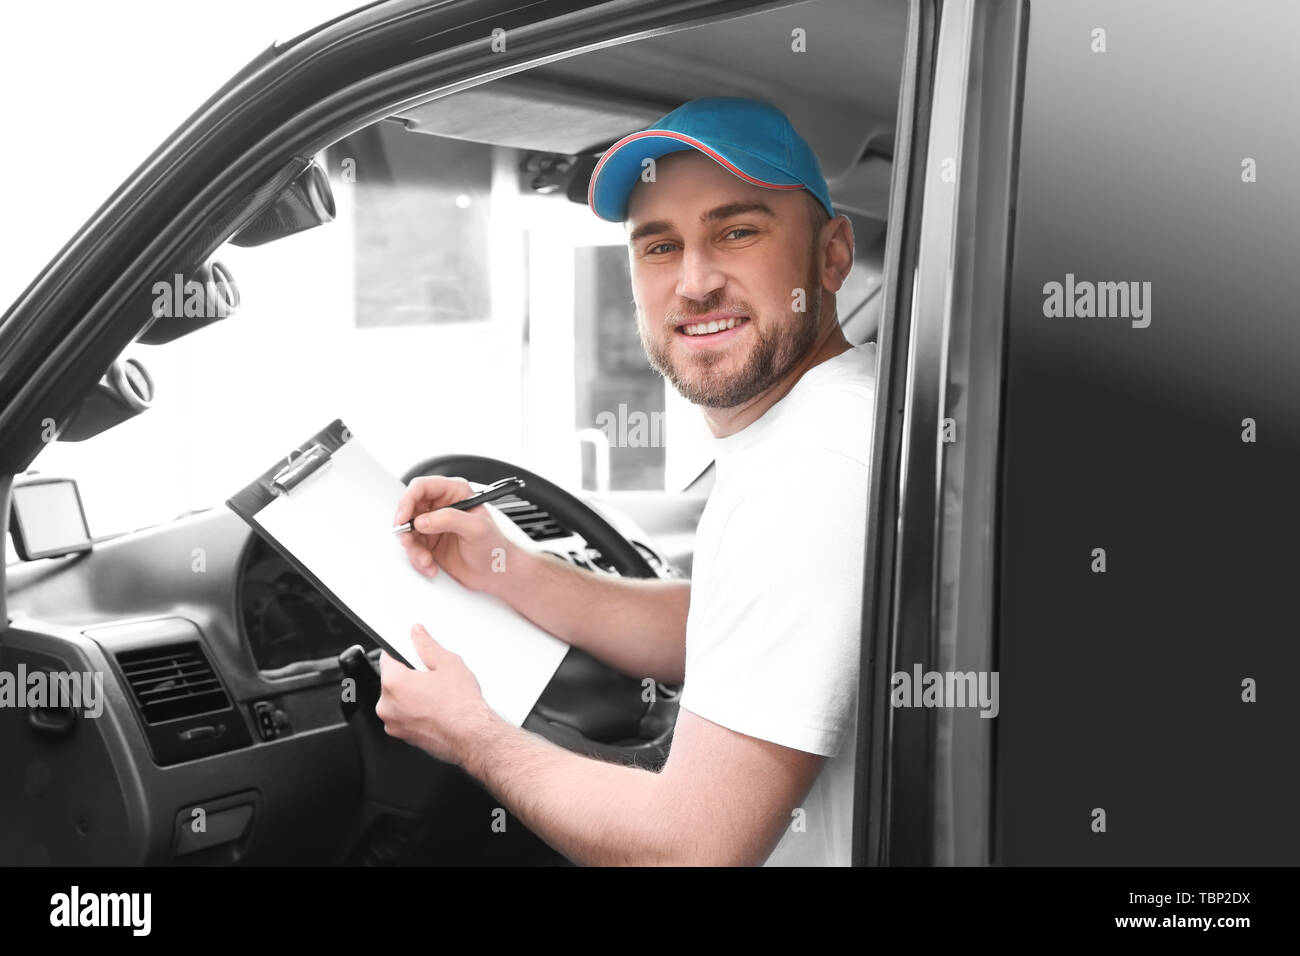 Handsome delivery man sitting in car - Stock Image